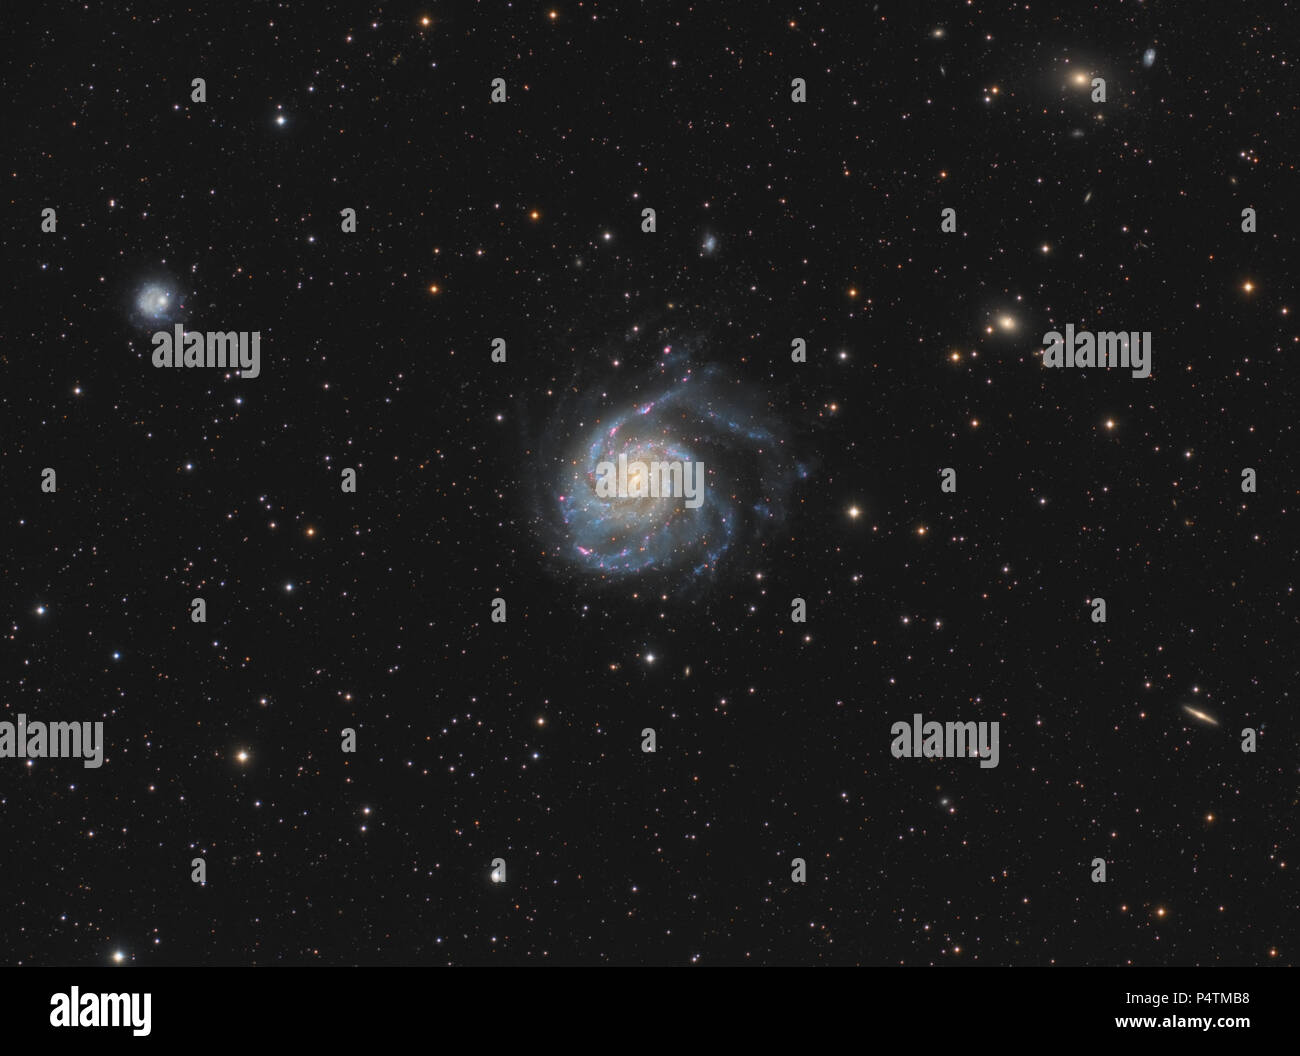 Messier 101 is a spiral galaxy located some 21 million light years distant in the constellation of Ursa Major. It was first observed on 27 March 1781  - Stock Image